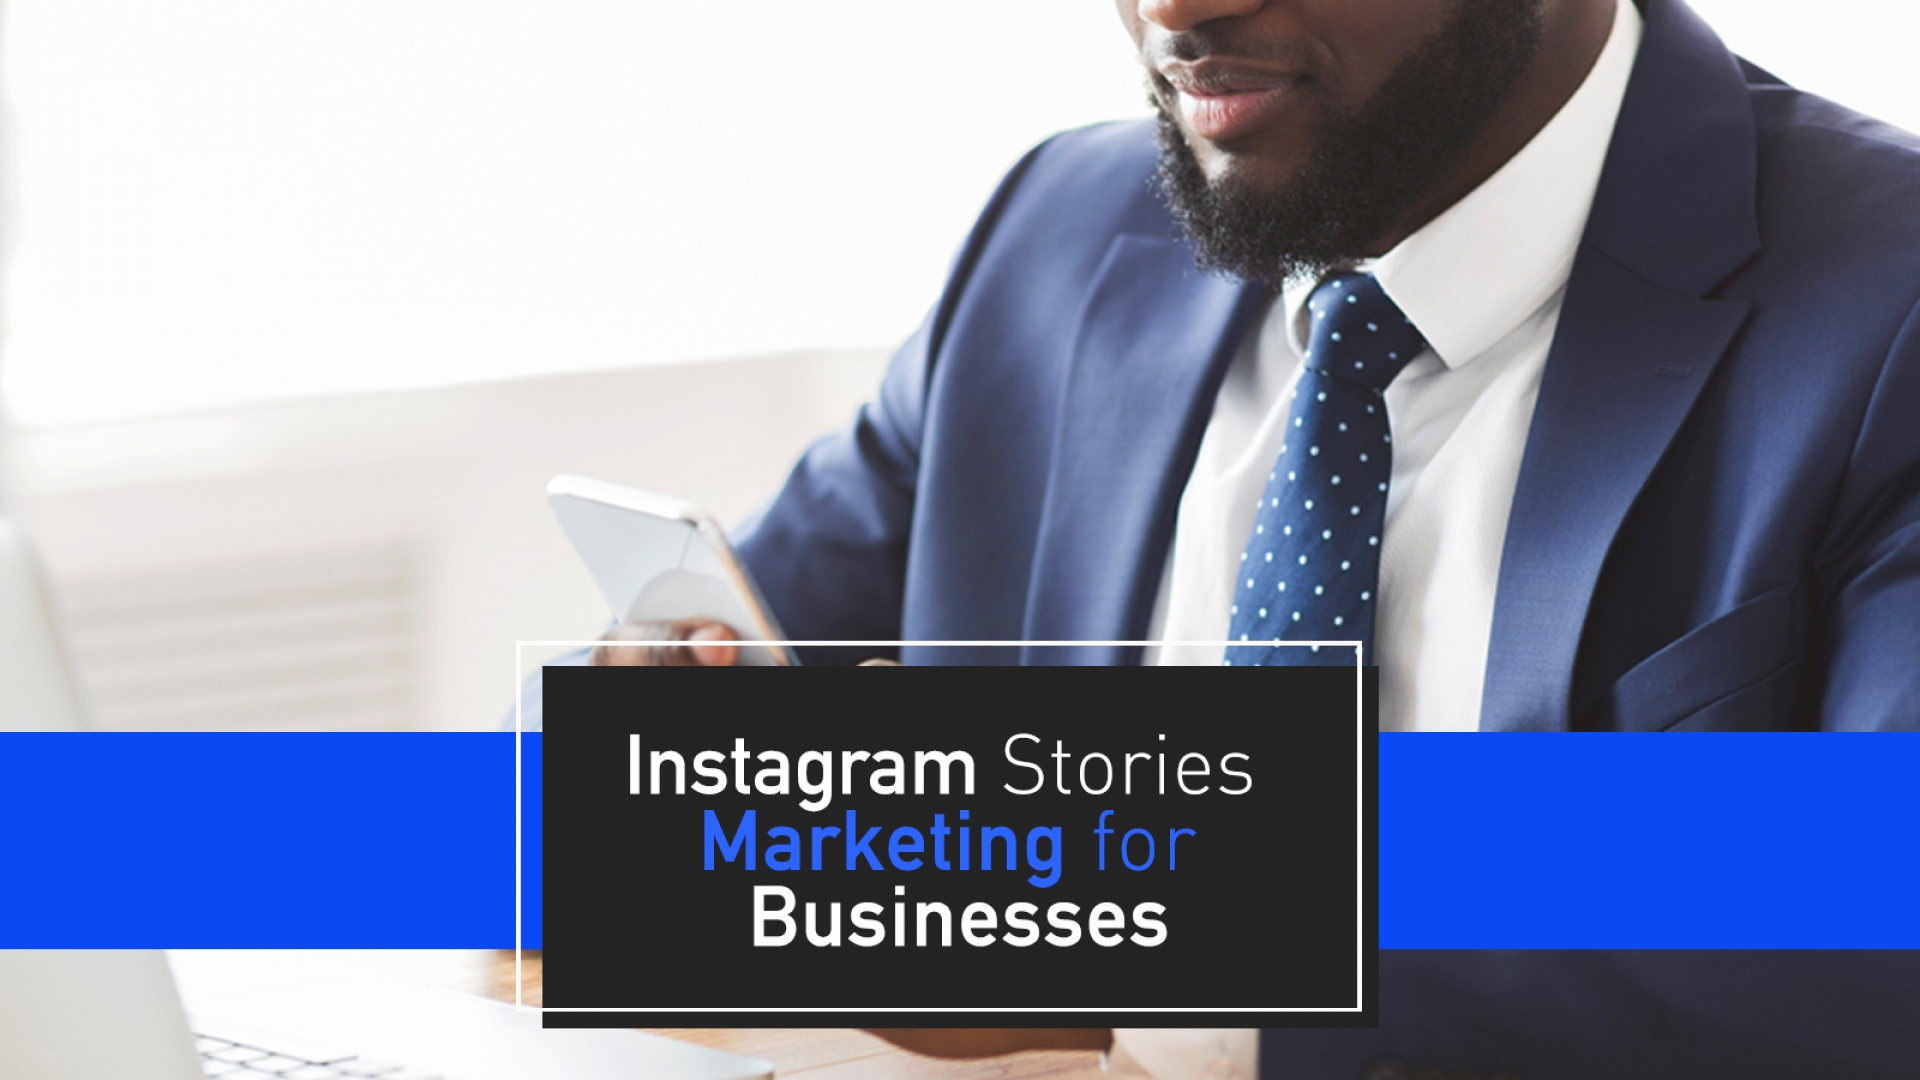 Instagram Stories Marketing for Businesses in 2020